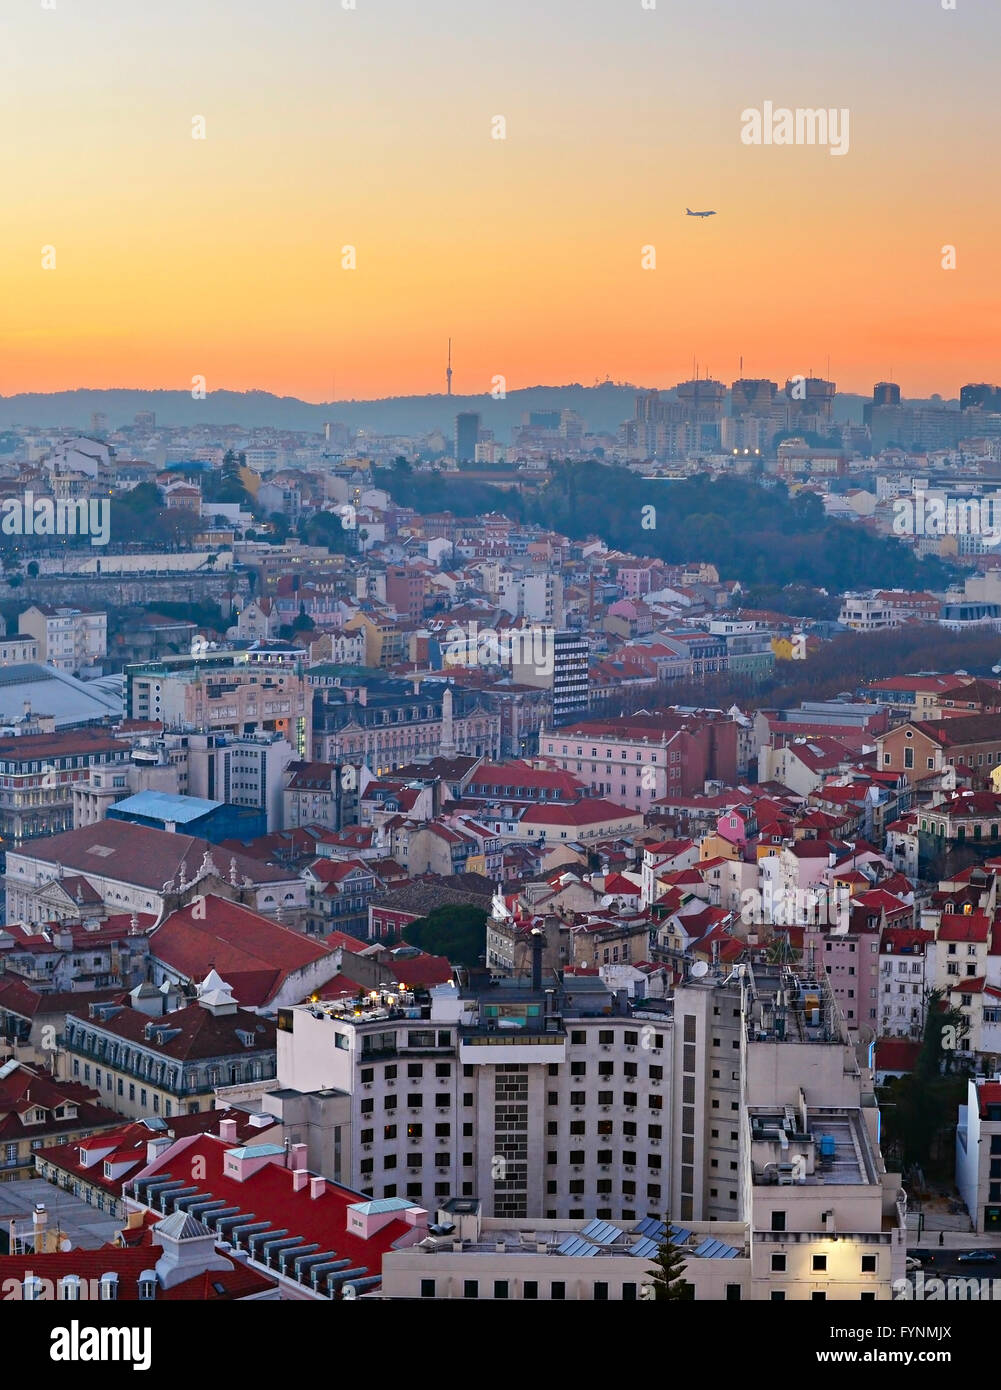 Airplane flying over the Lisbon city. Portugal - Stock Image